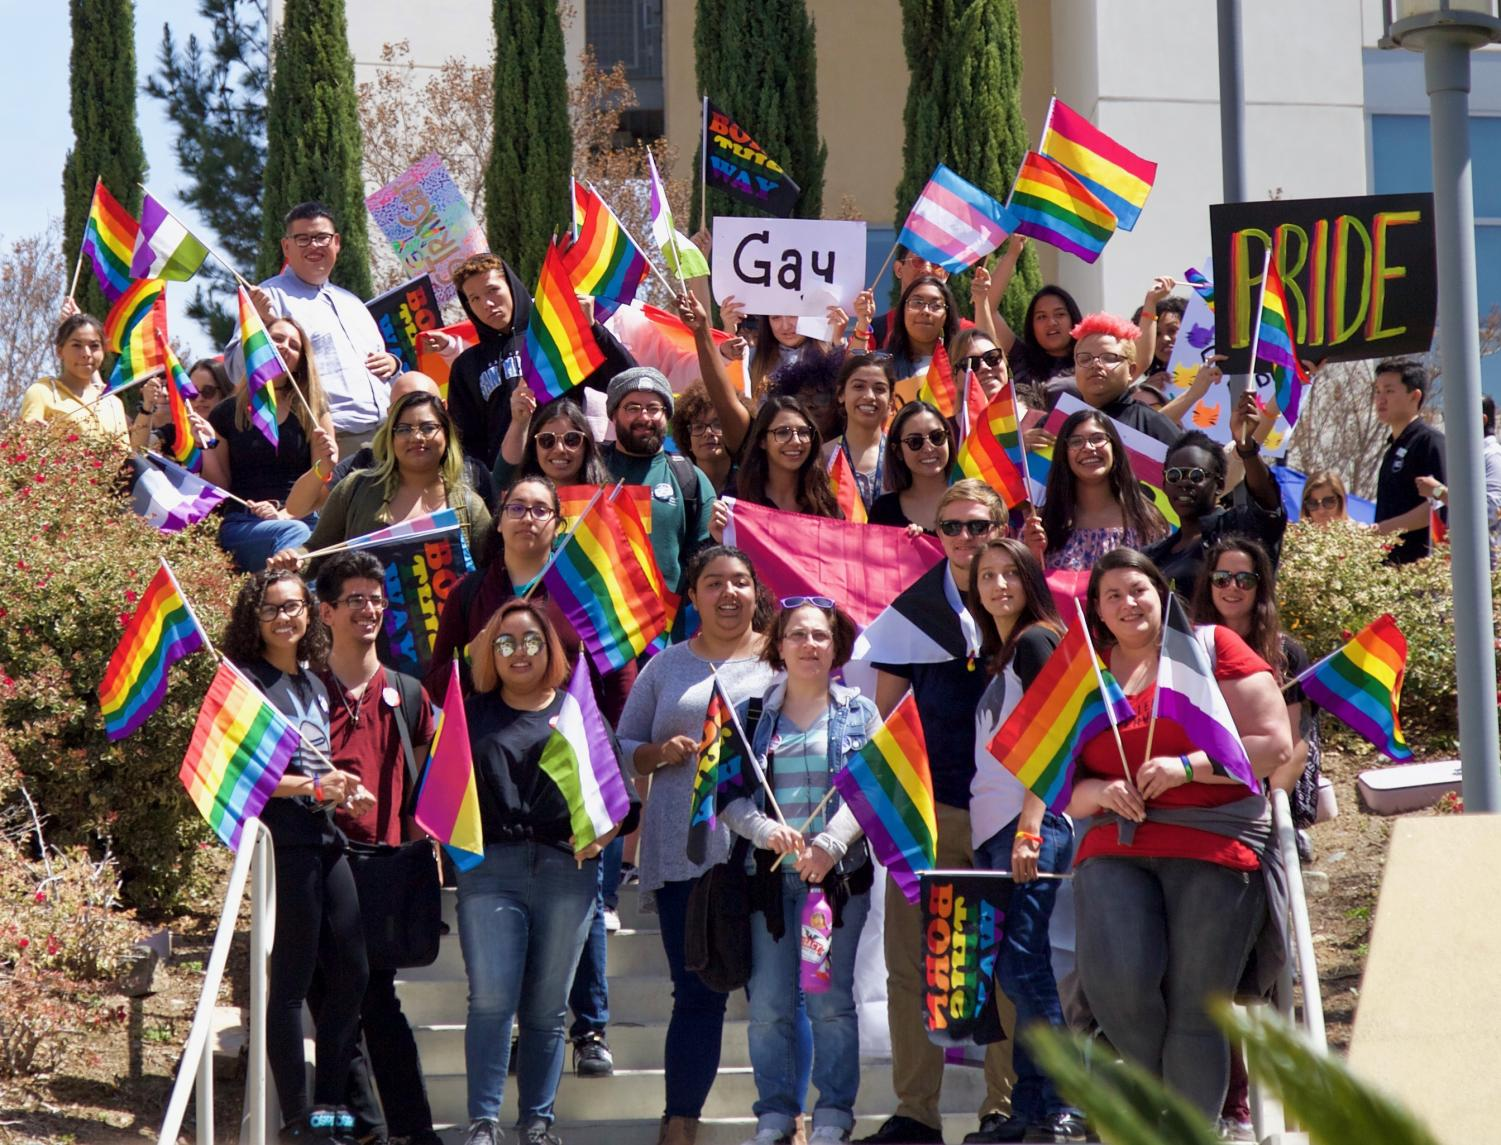 Proud cougars join in solidarity to walk in CSUSM's annual Pride Walk on Apr. 3.